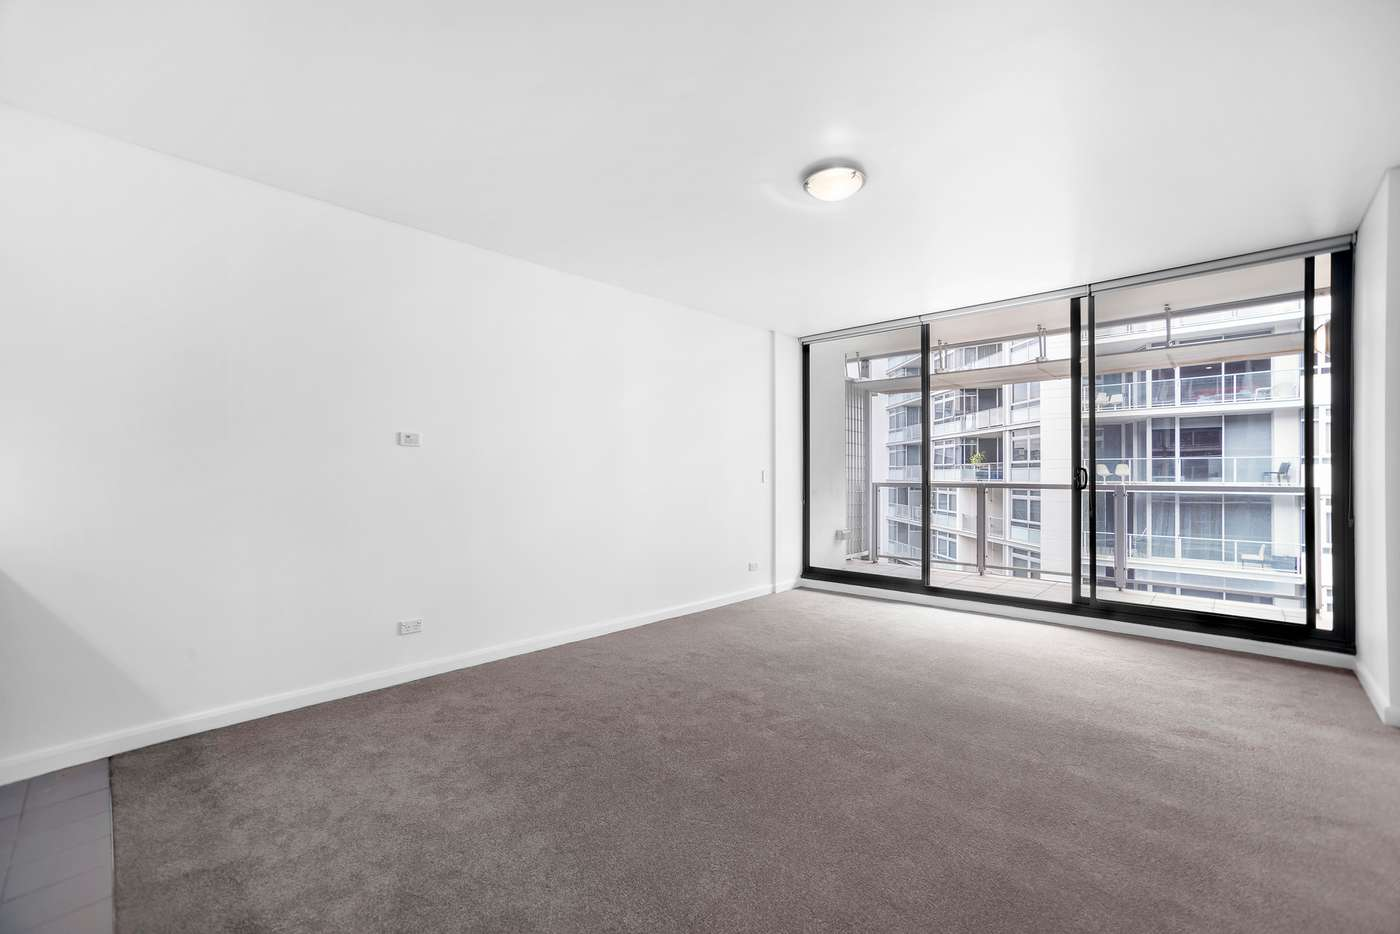 Main view of Homely studio listing, 609/45 Shelley Street, Sydney NSW 2000